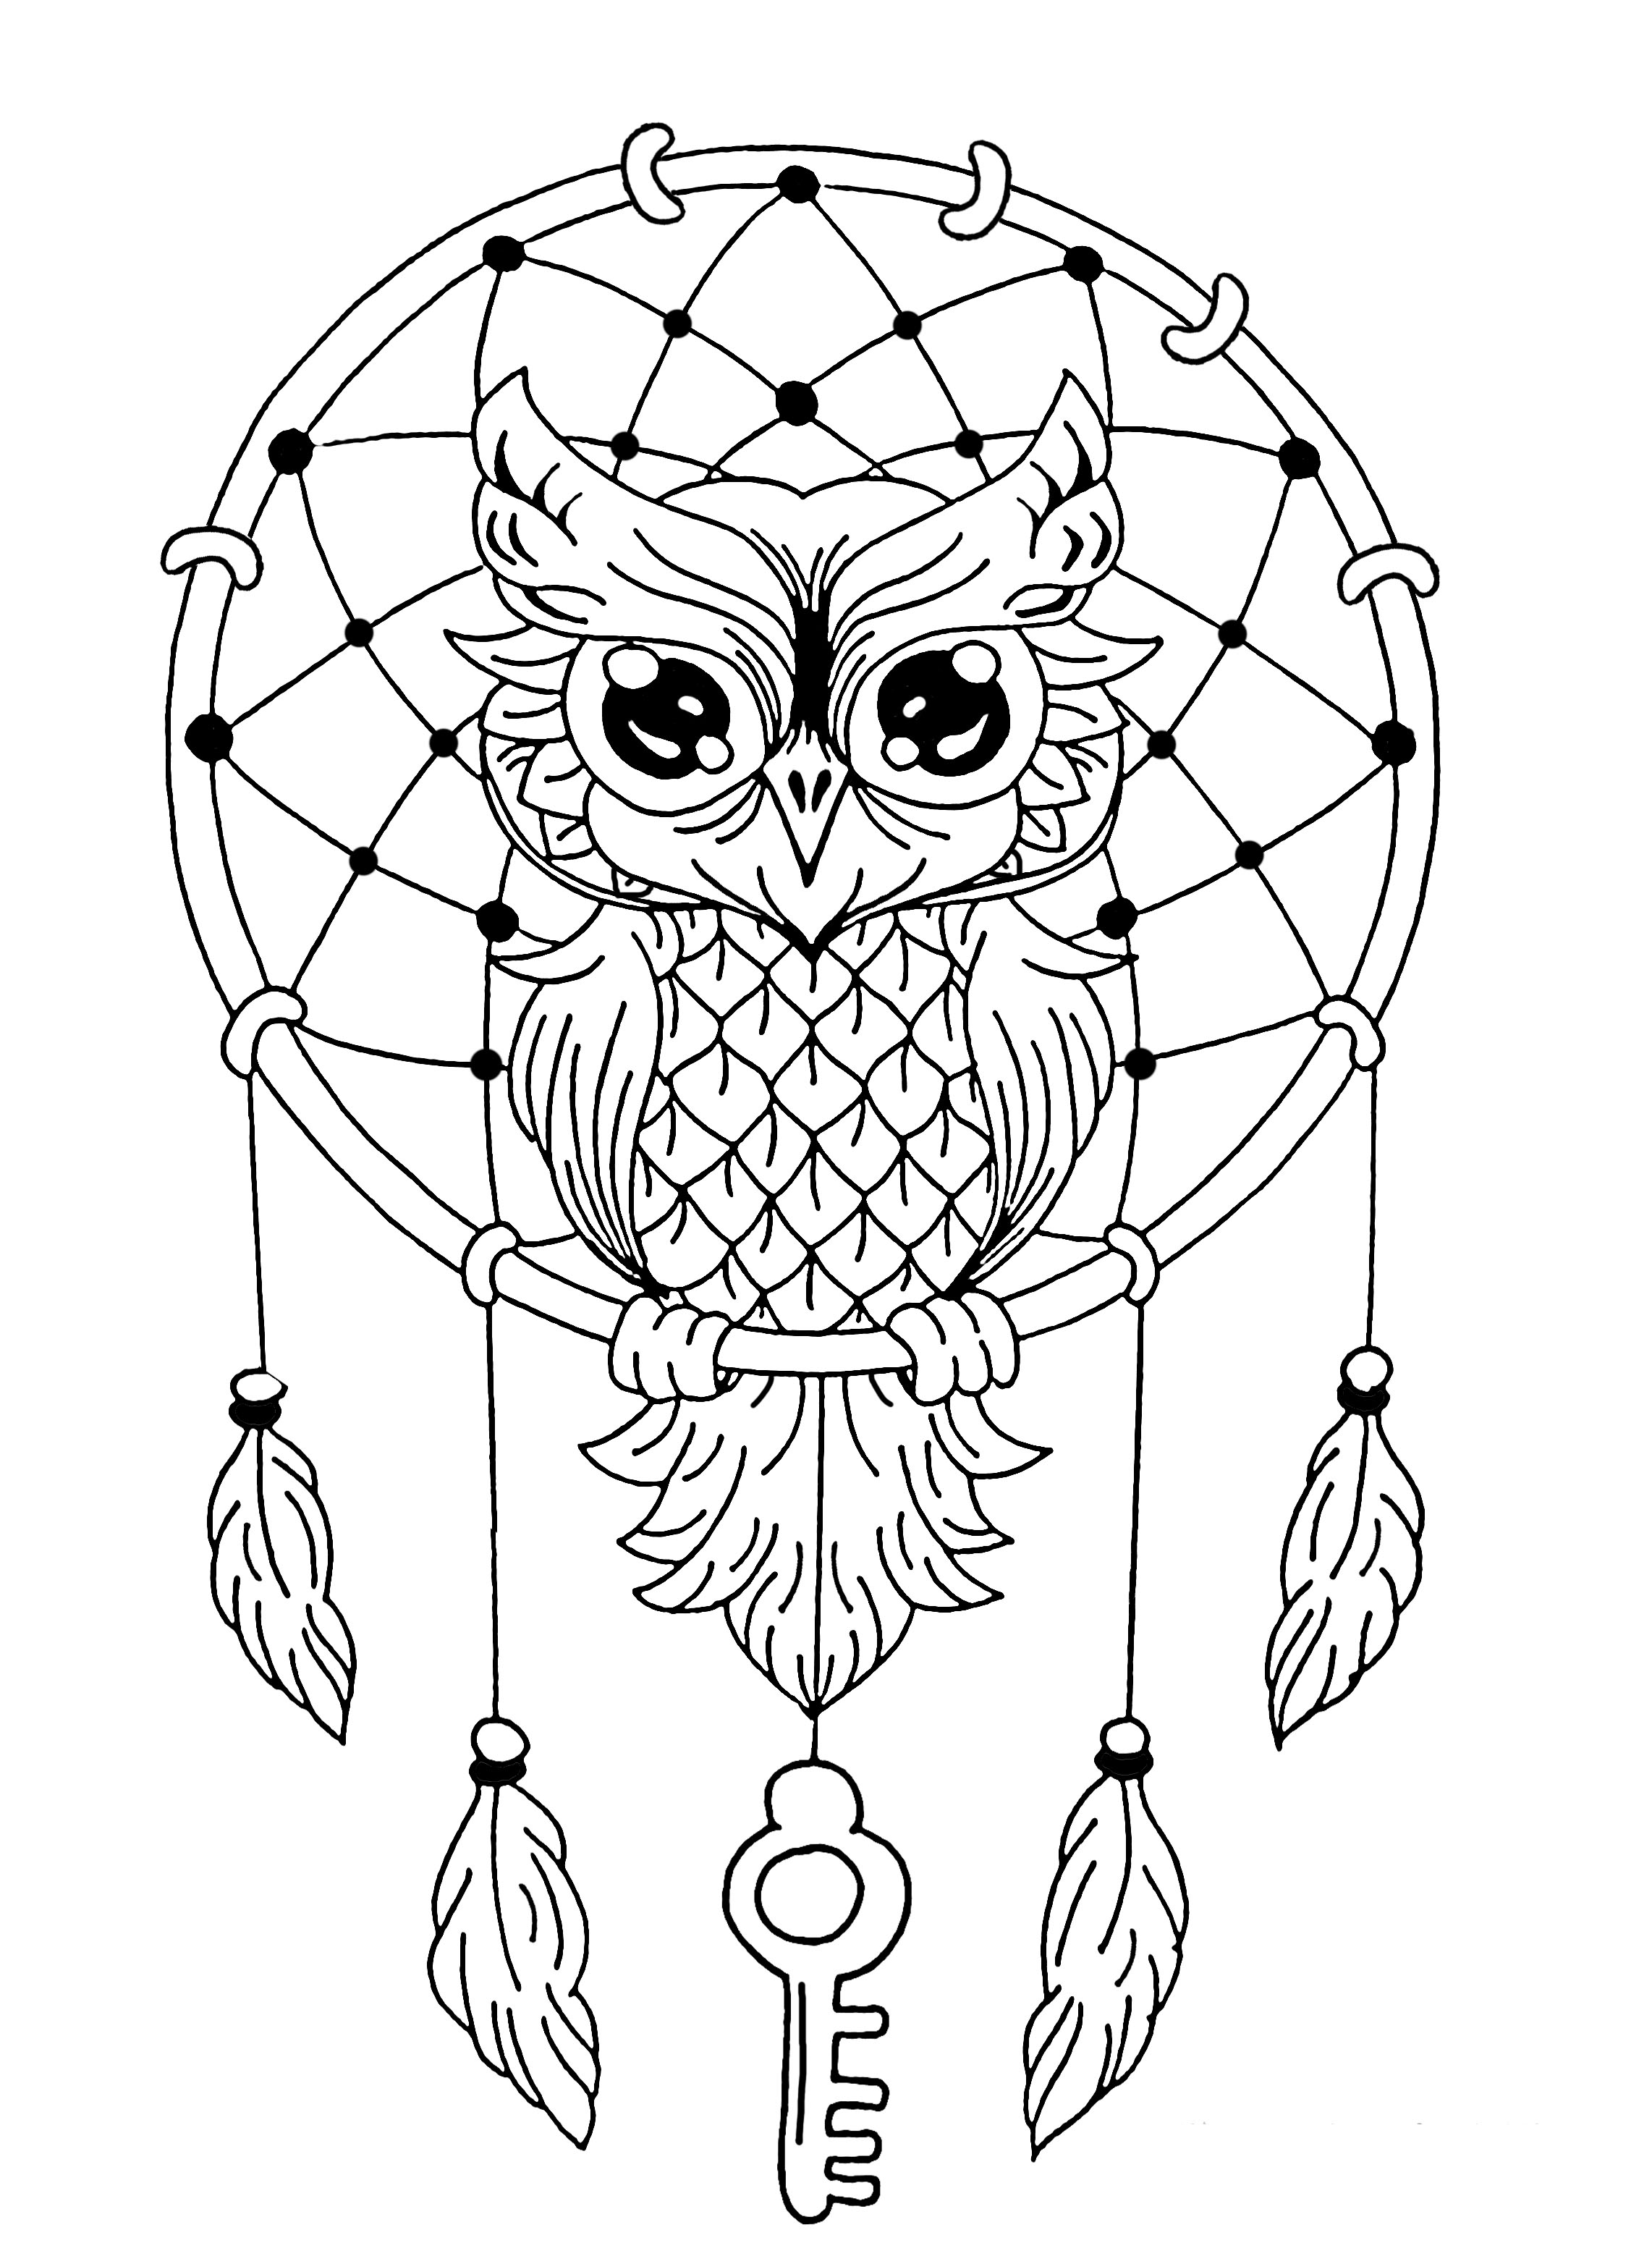 coloring book owl pictures owl dreamcatcher owls adult coloring pages owl coloring book pictures